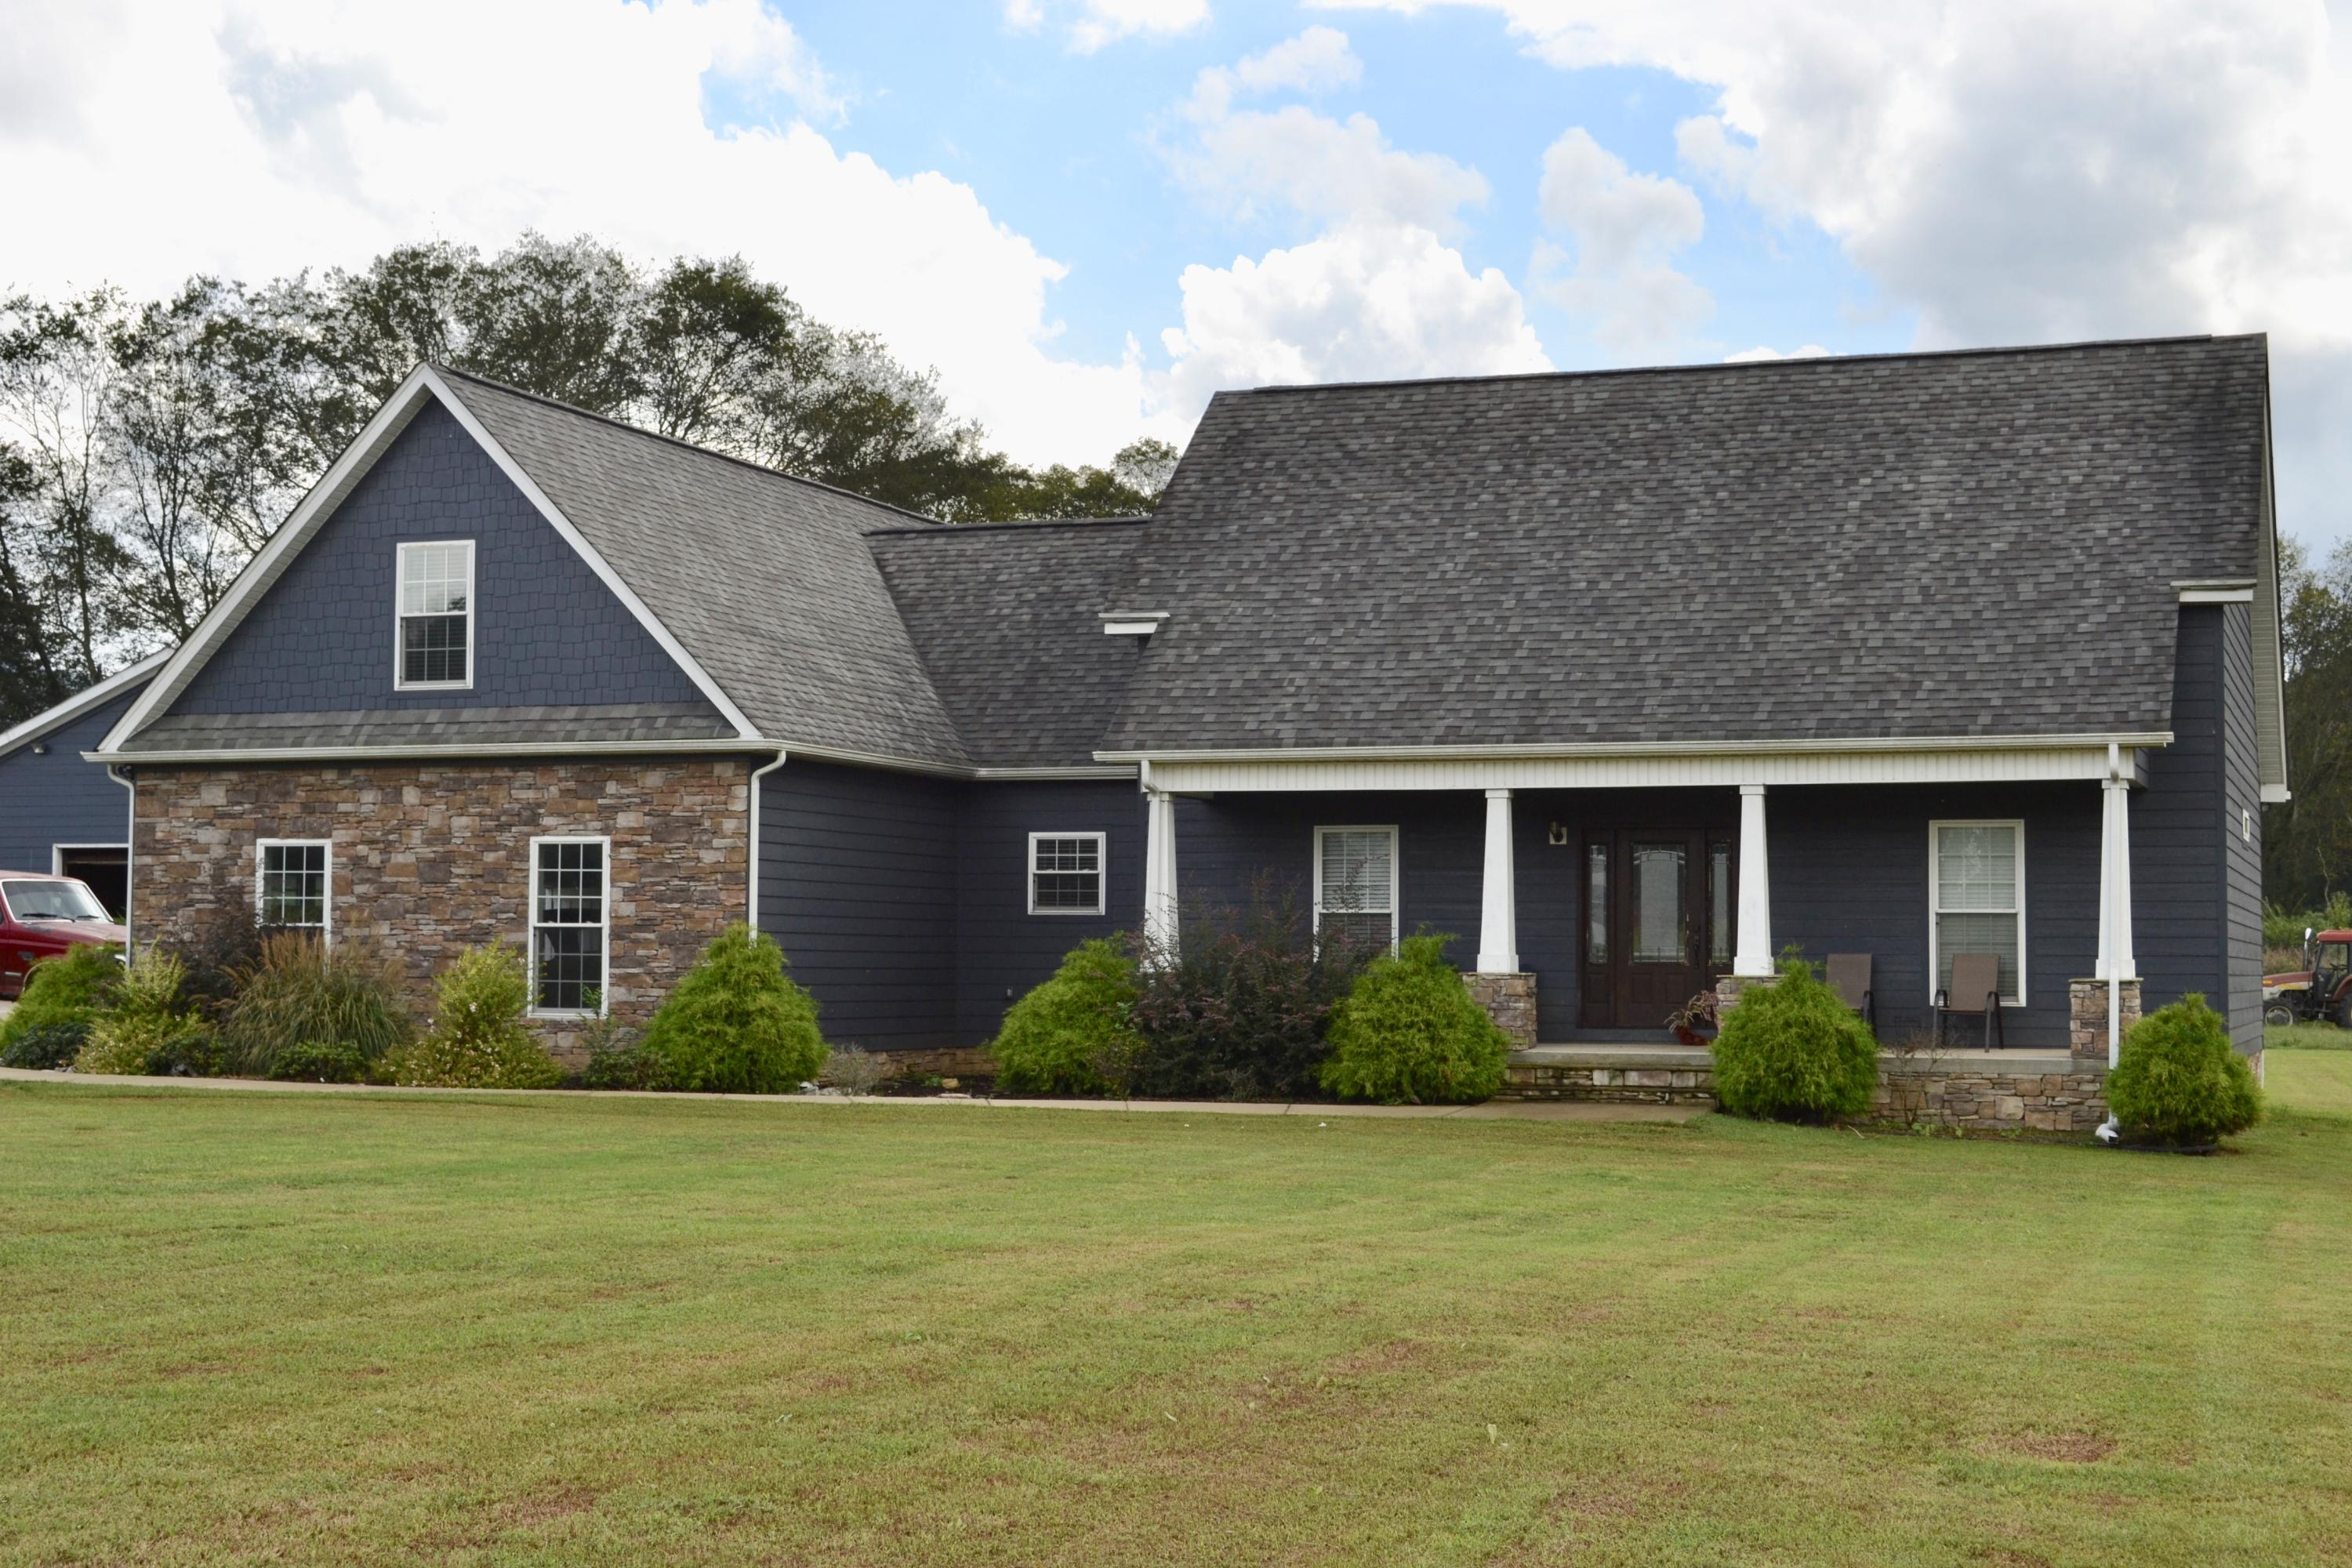 395 Grayson Rd, Whitwell, TN 37397